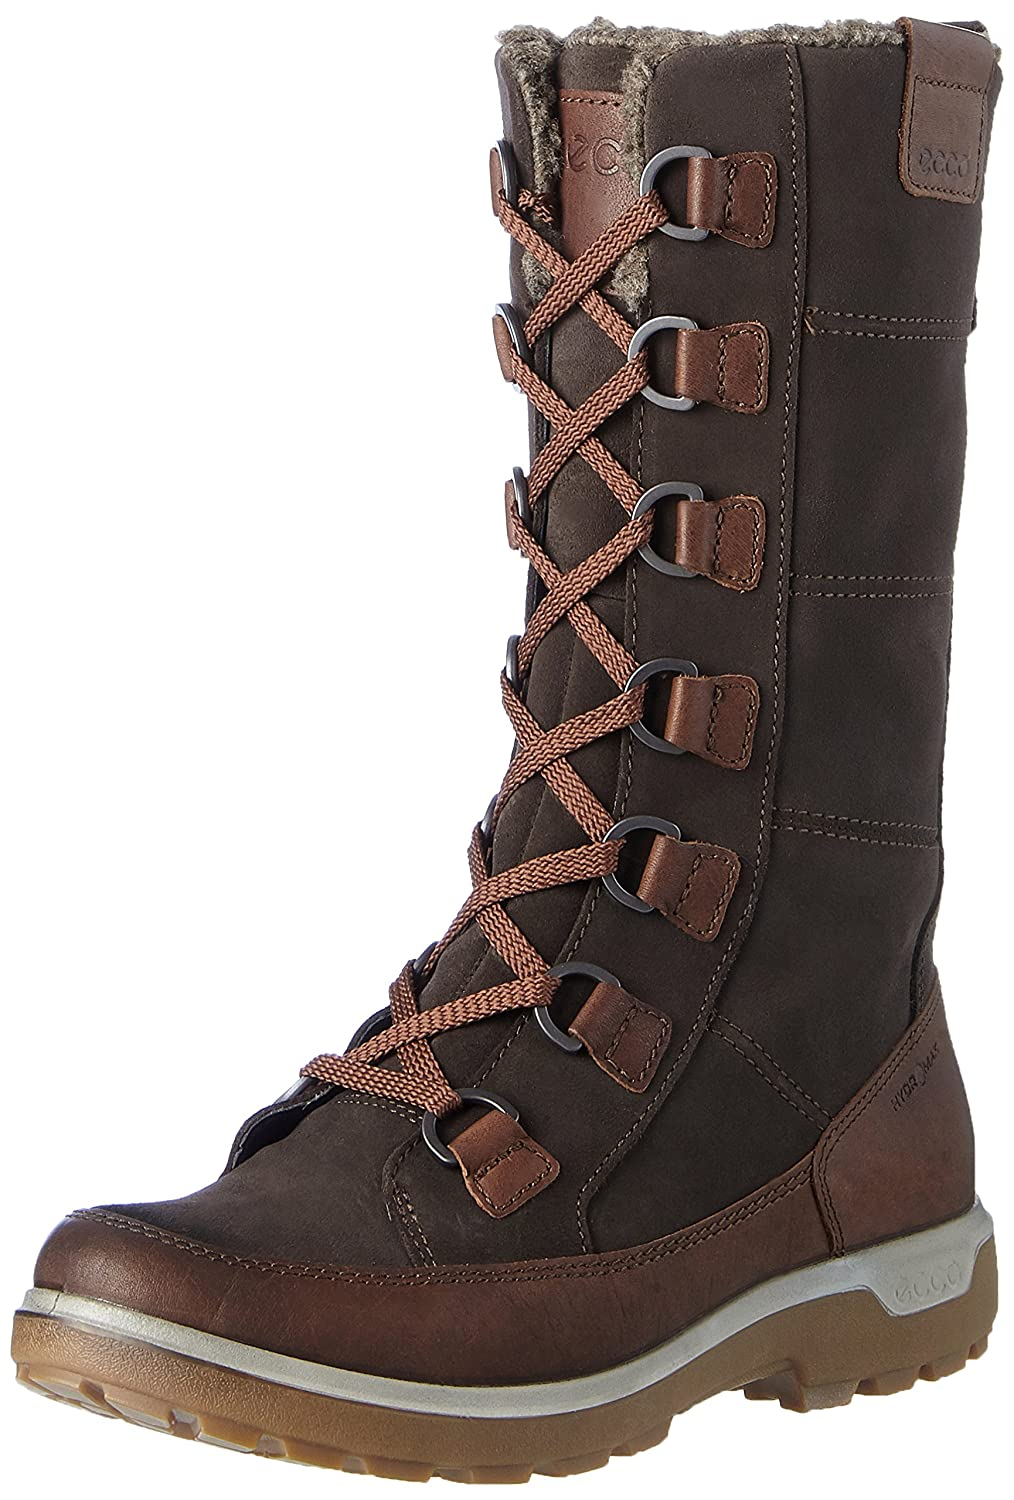 Ecco Shoes Women's Gora Tall Winter Snow Boots Gora Tall Boot-W